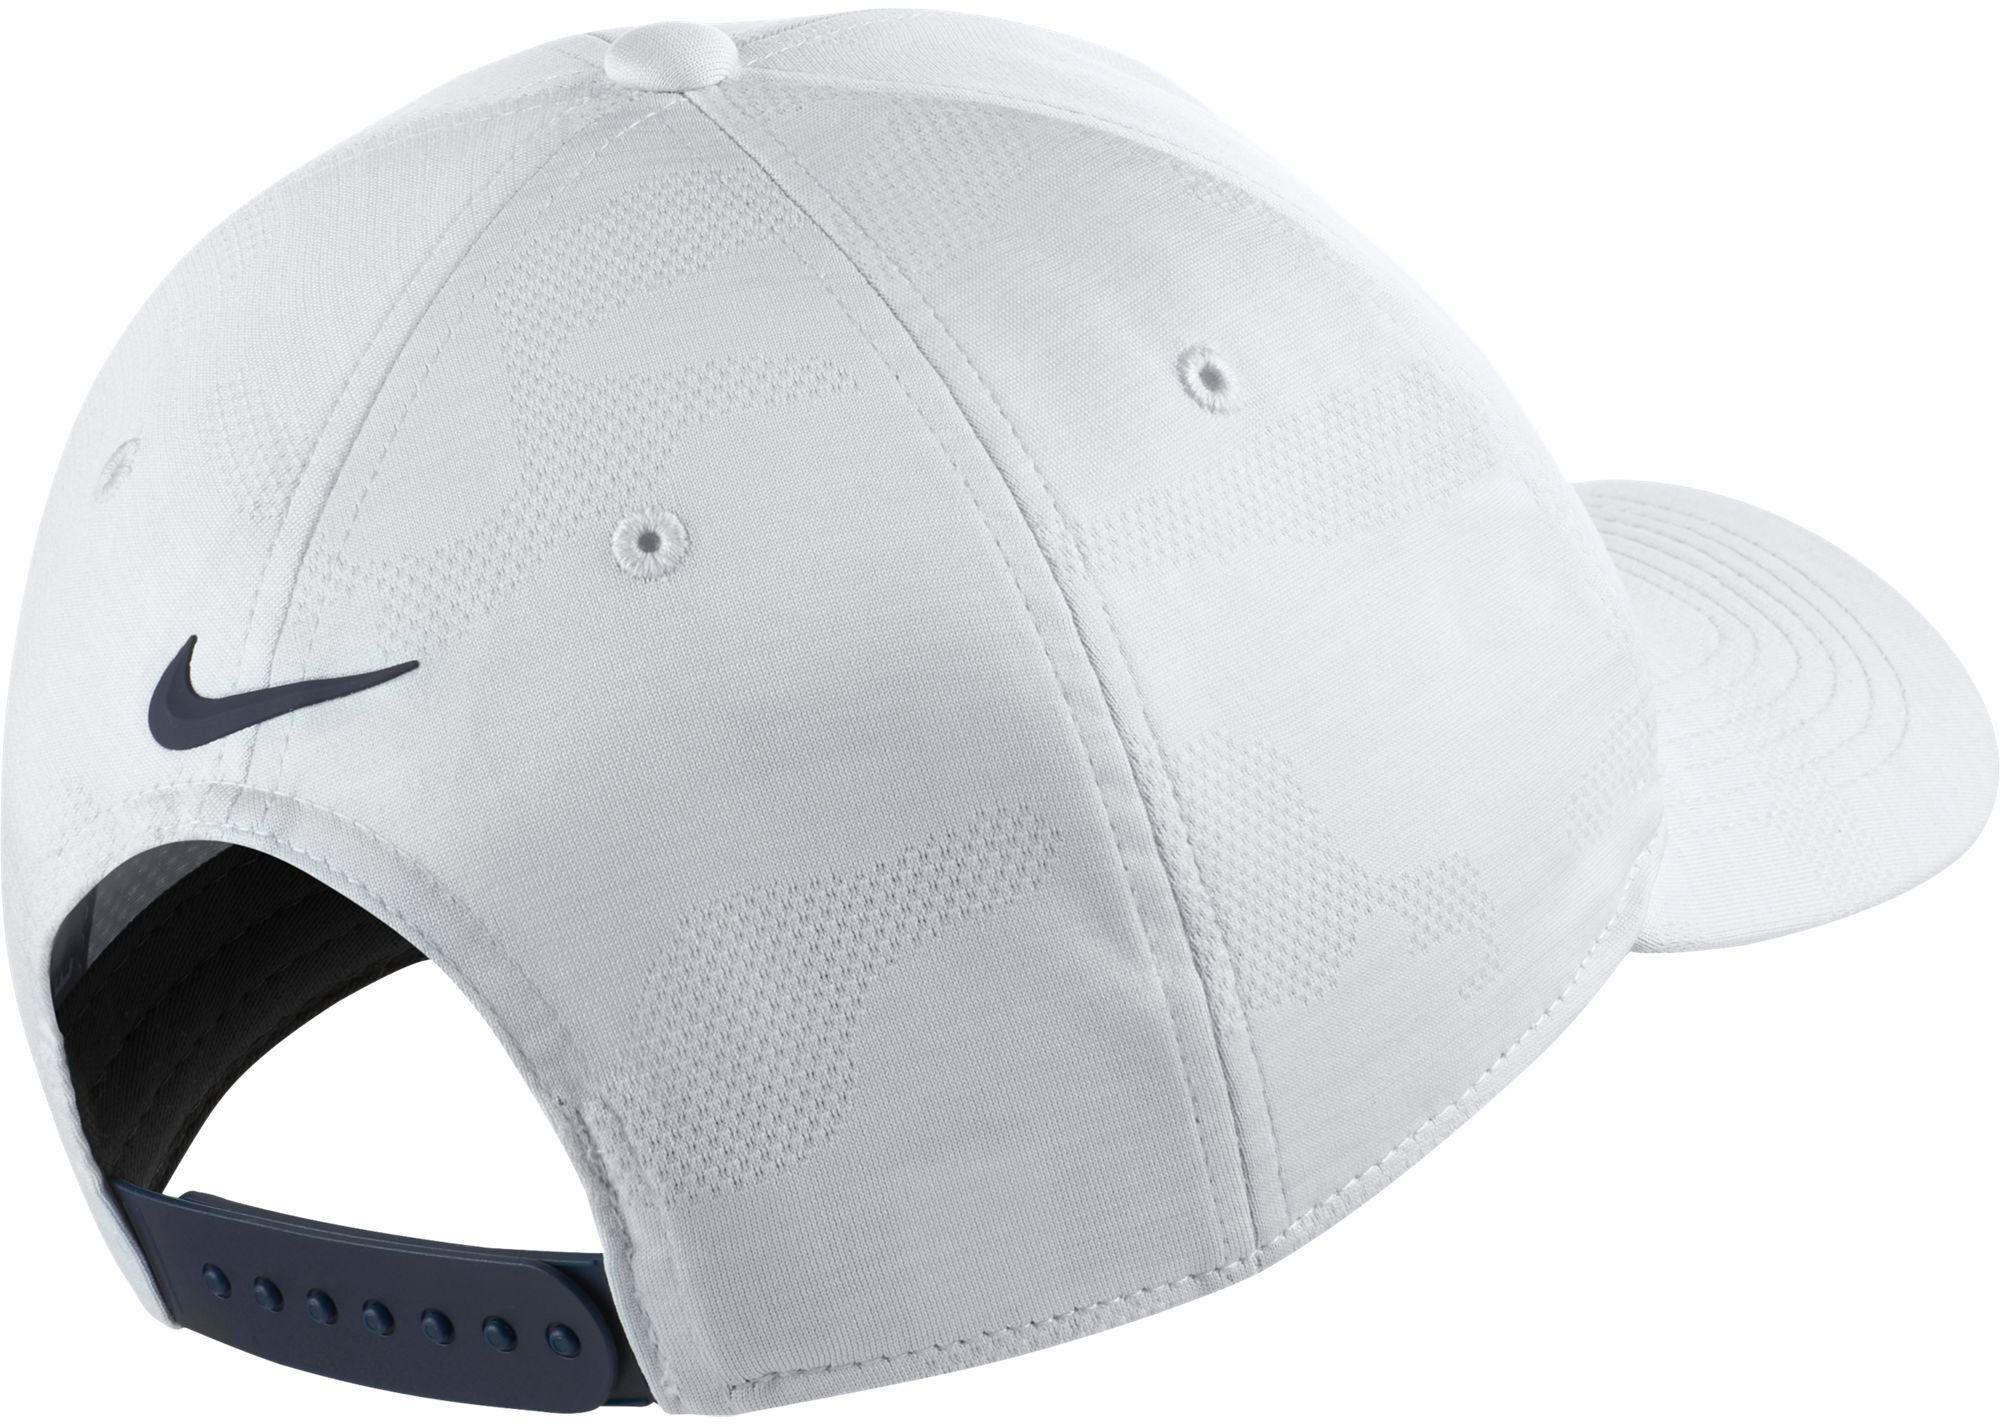 low priced aabf1 50457 Nike Legacy 91 Adjustable Golf Hat in White for Men - Save 26% - Lyst